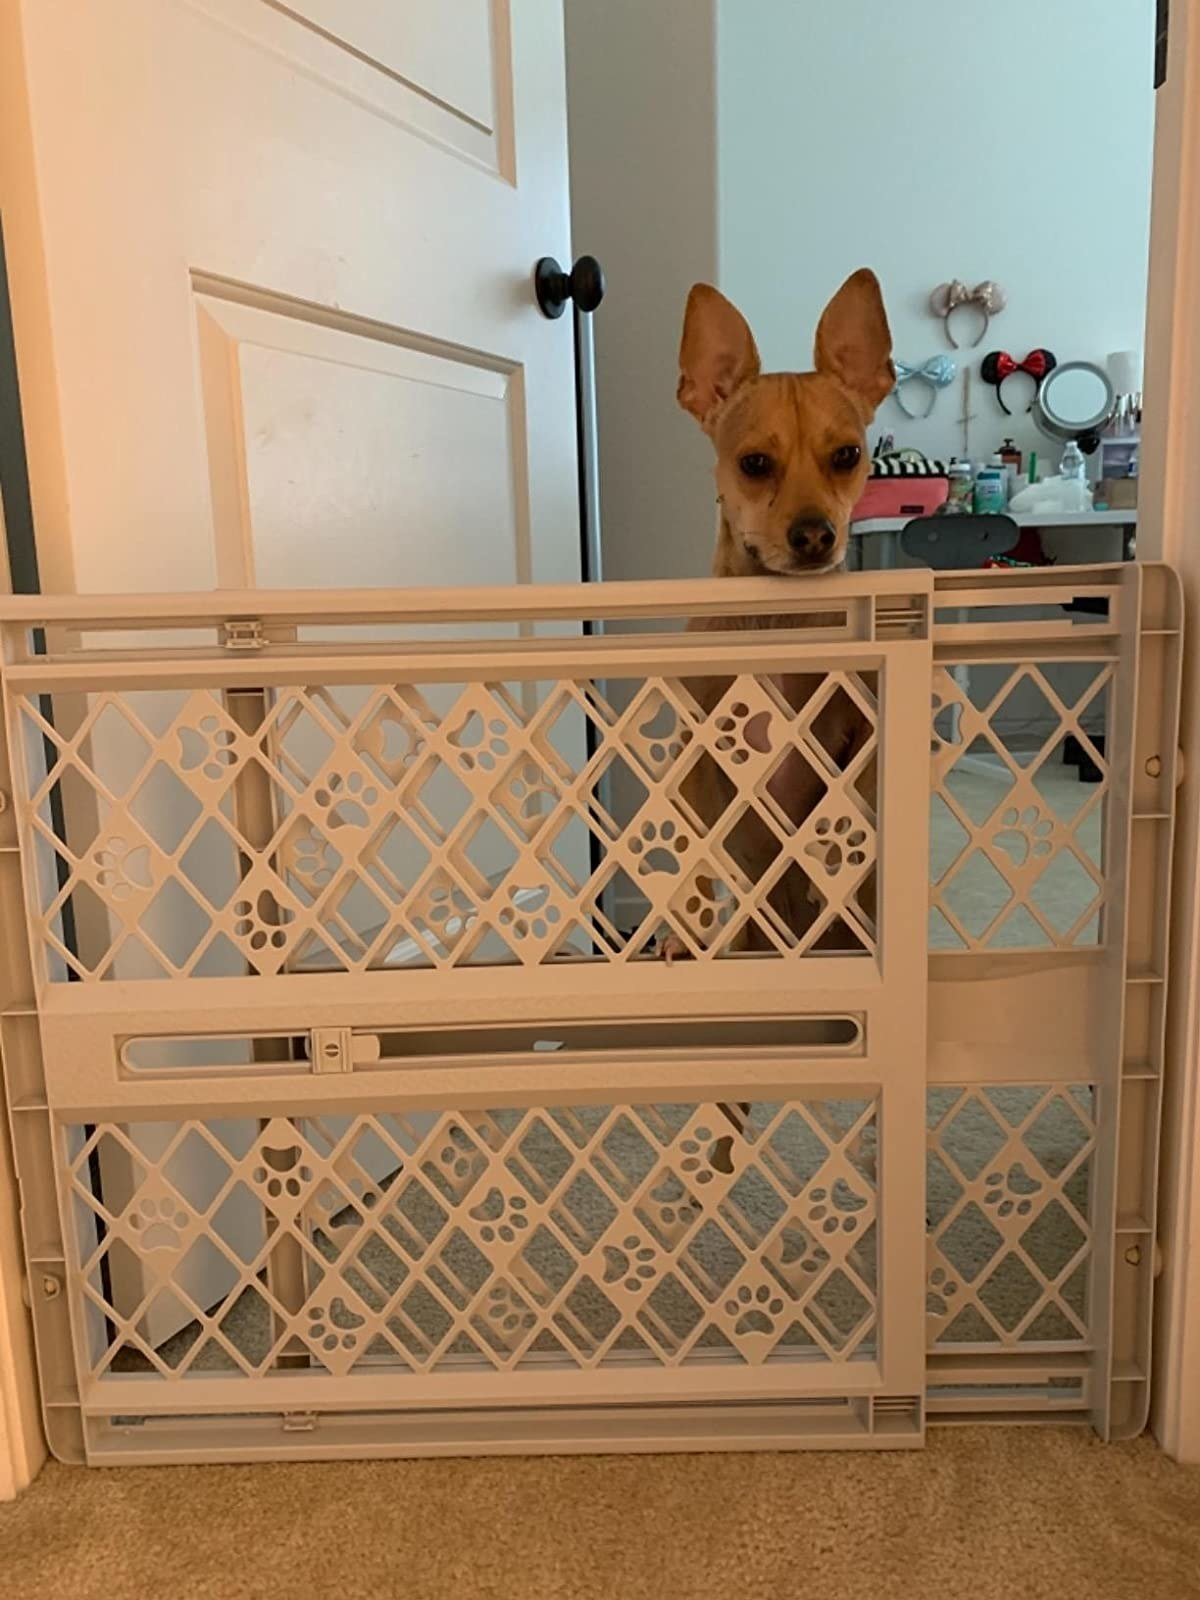 a dog looking over the top of the plastic gate